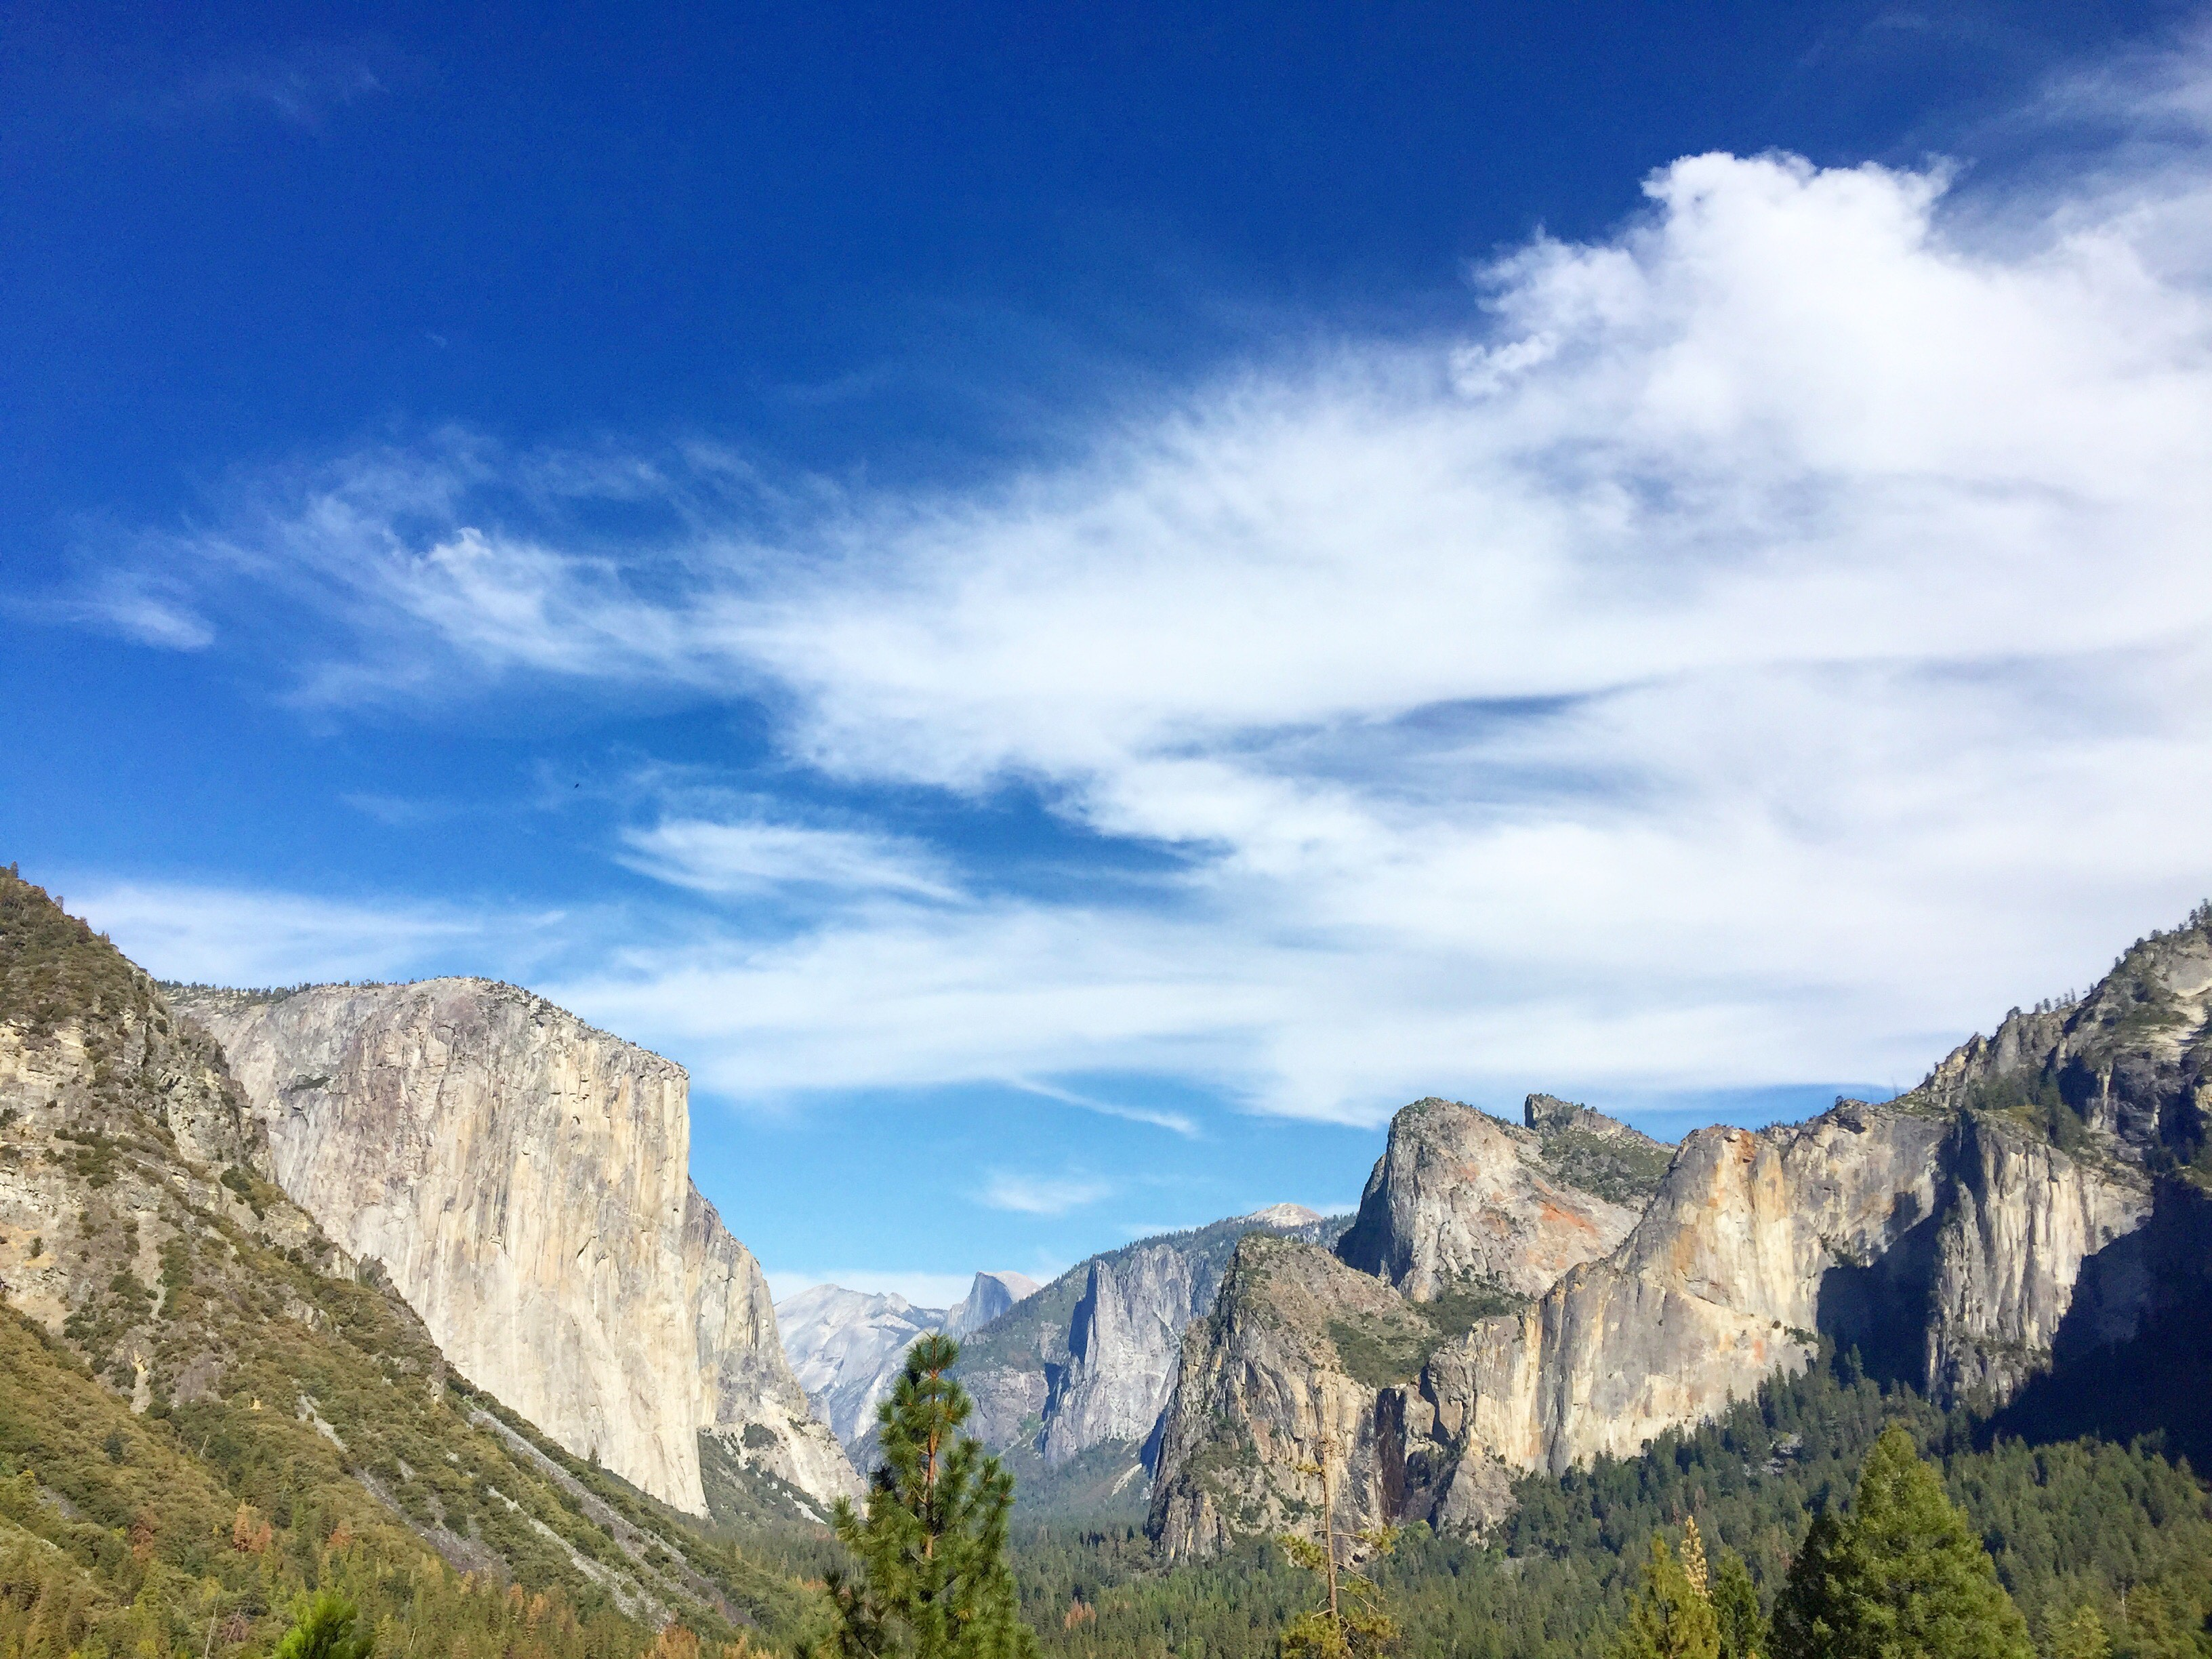 After the tunnel entrance at Yosemite, you are greeted by THIS.